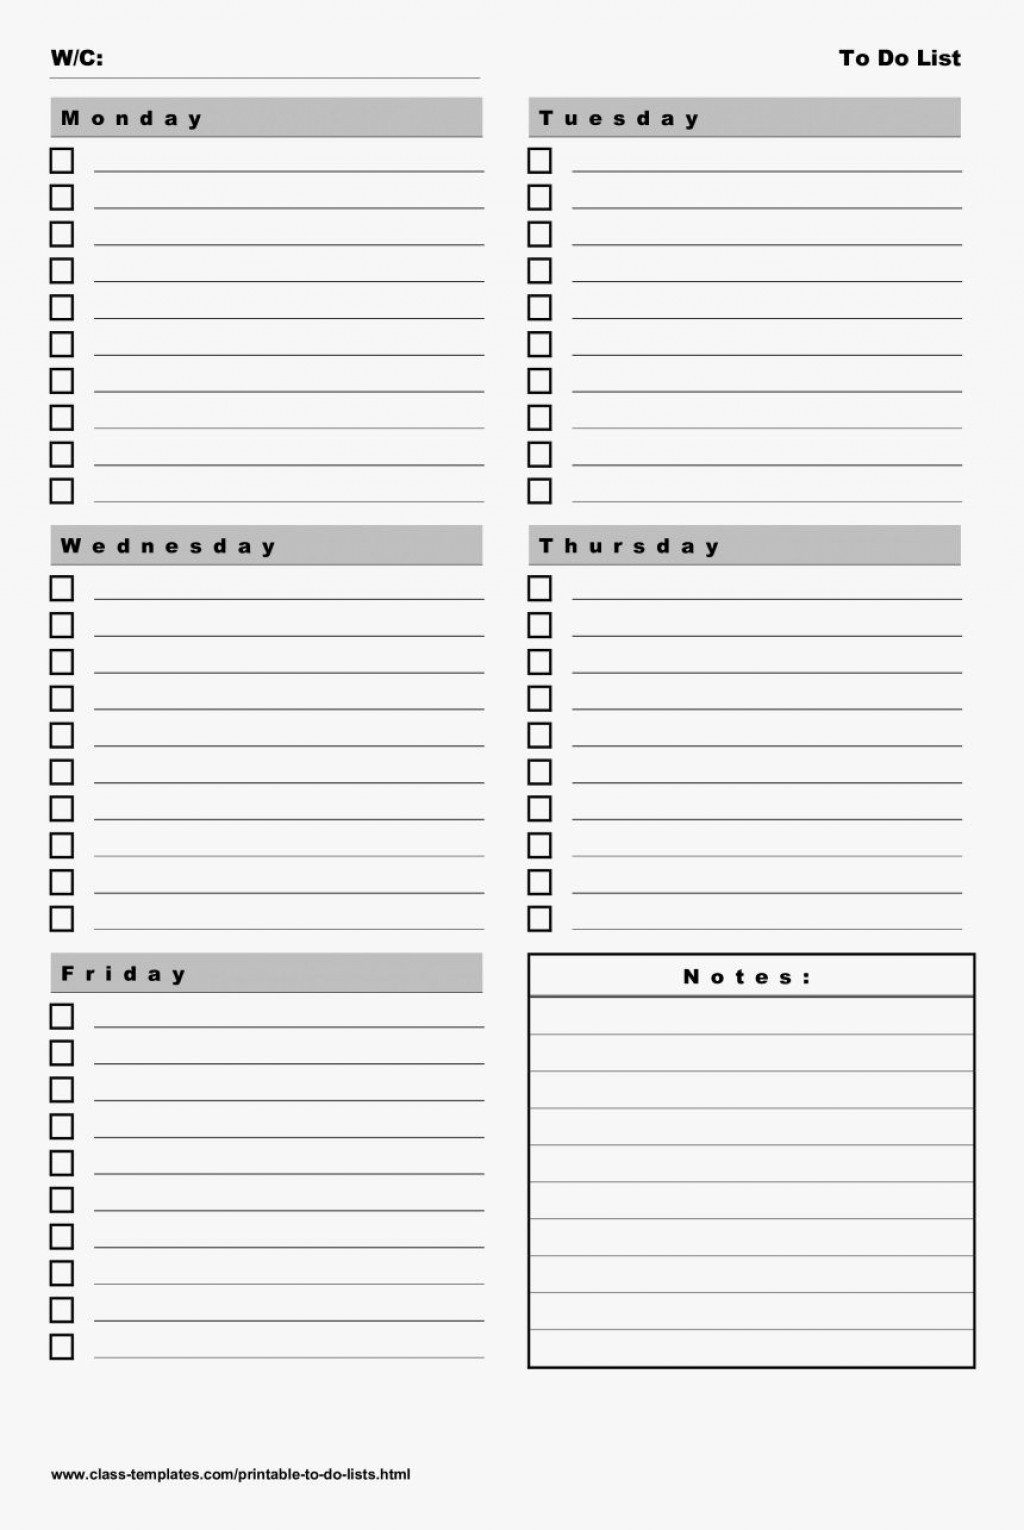 003 Frightening Weekly Todo List Template Photo  To Do Pinterest Task Excel Daily PdfLarge